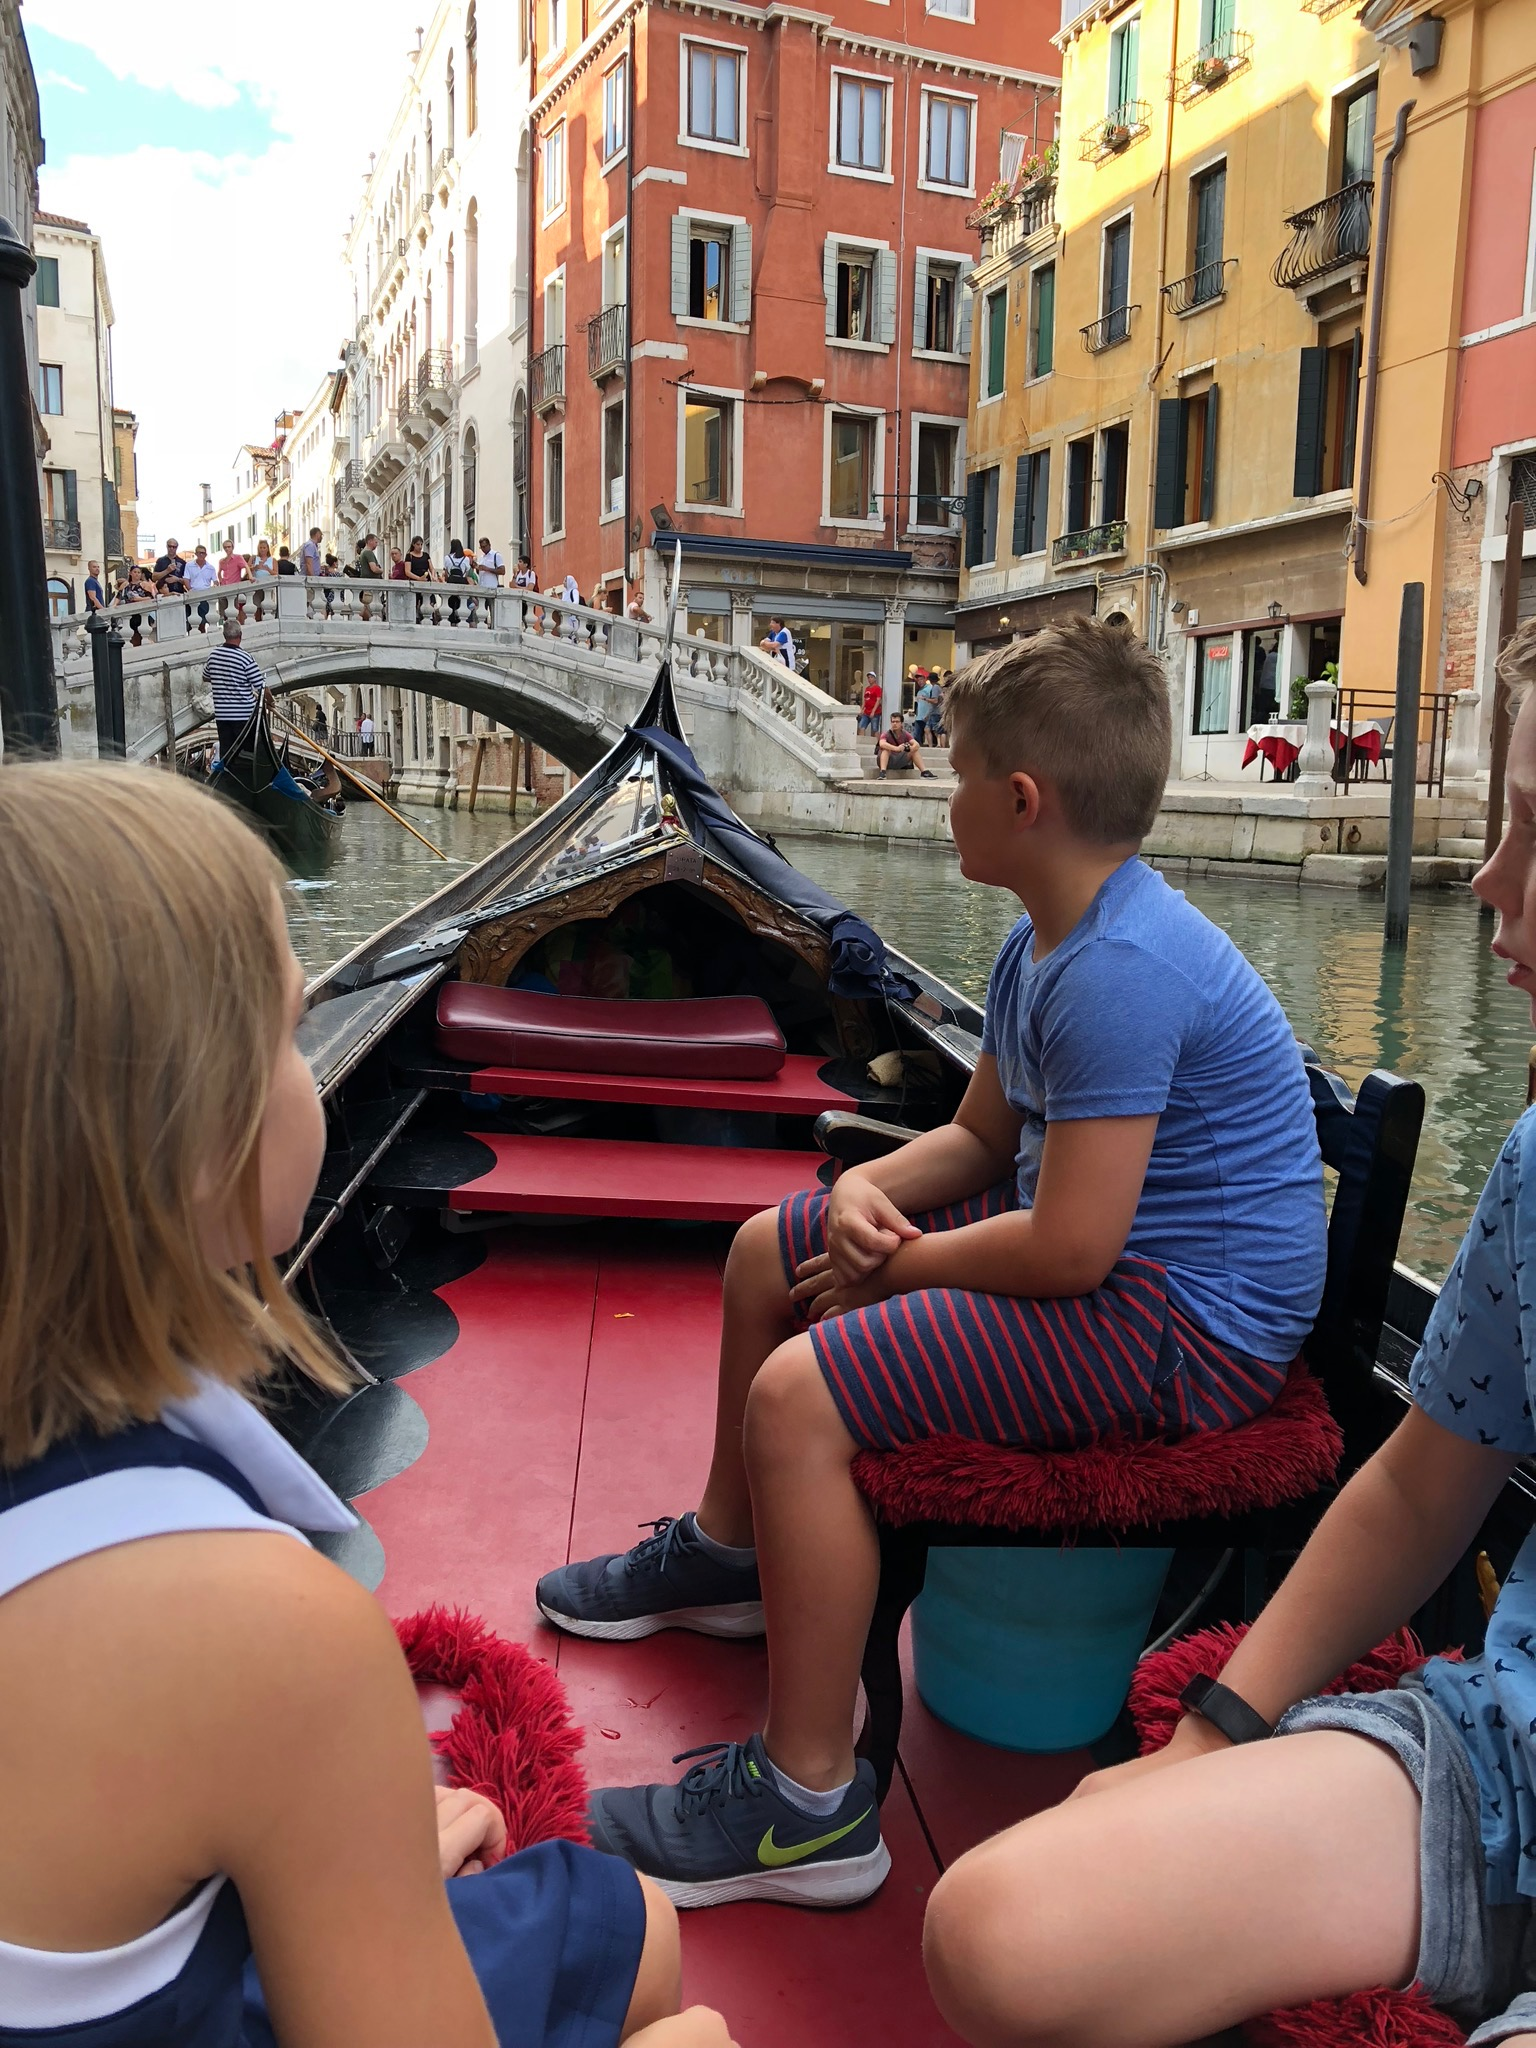 The iconic gondola ride did NOT disappoint. We loved our holiday in every way - so grateful.